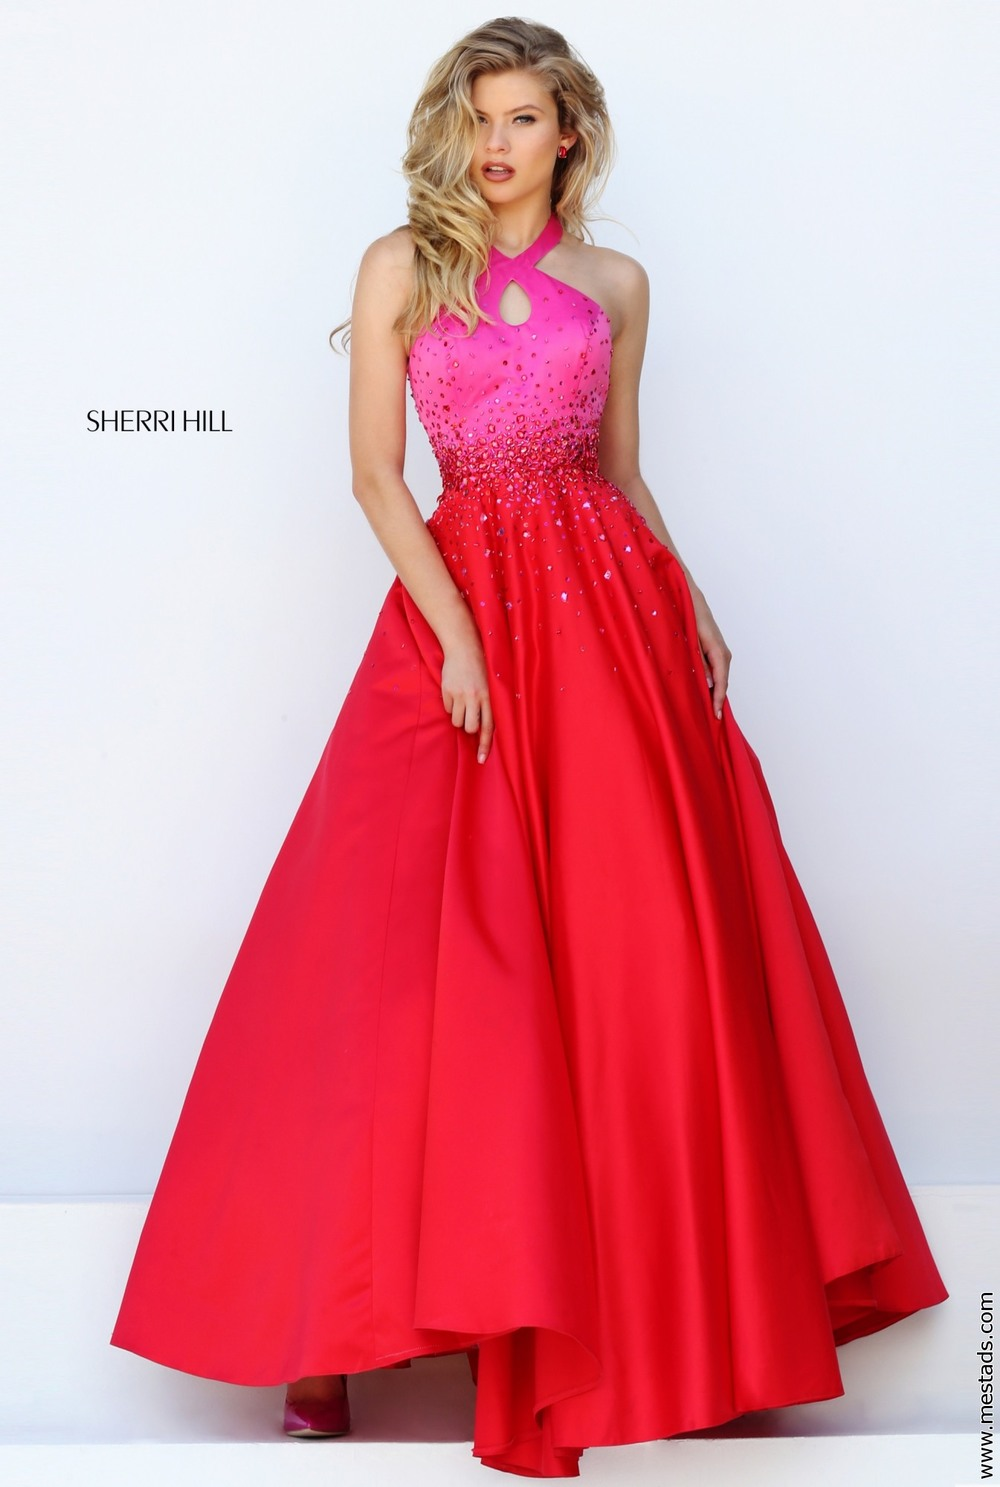 Prom Dresses 2018 Rochester Mn 106